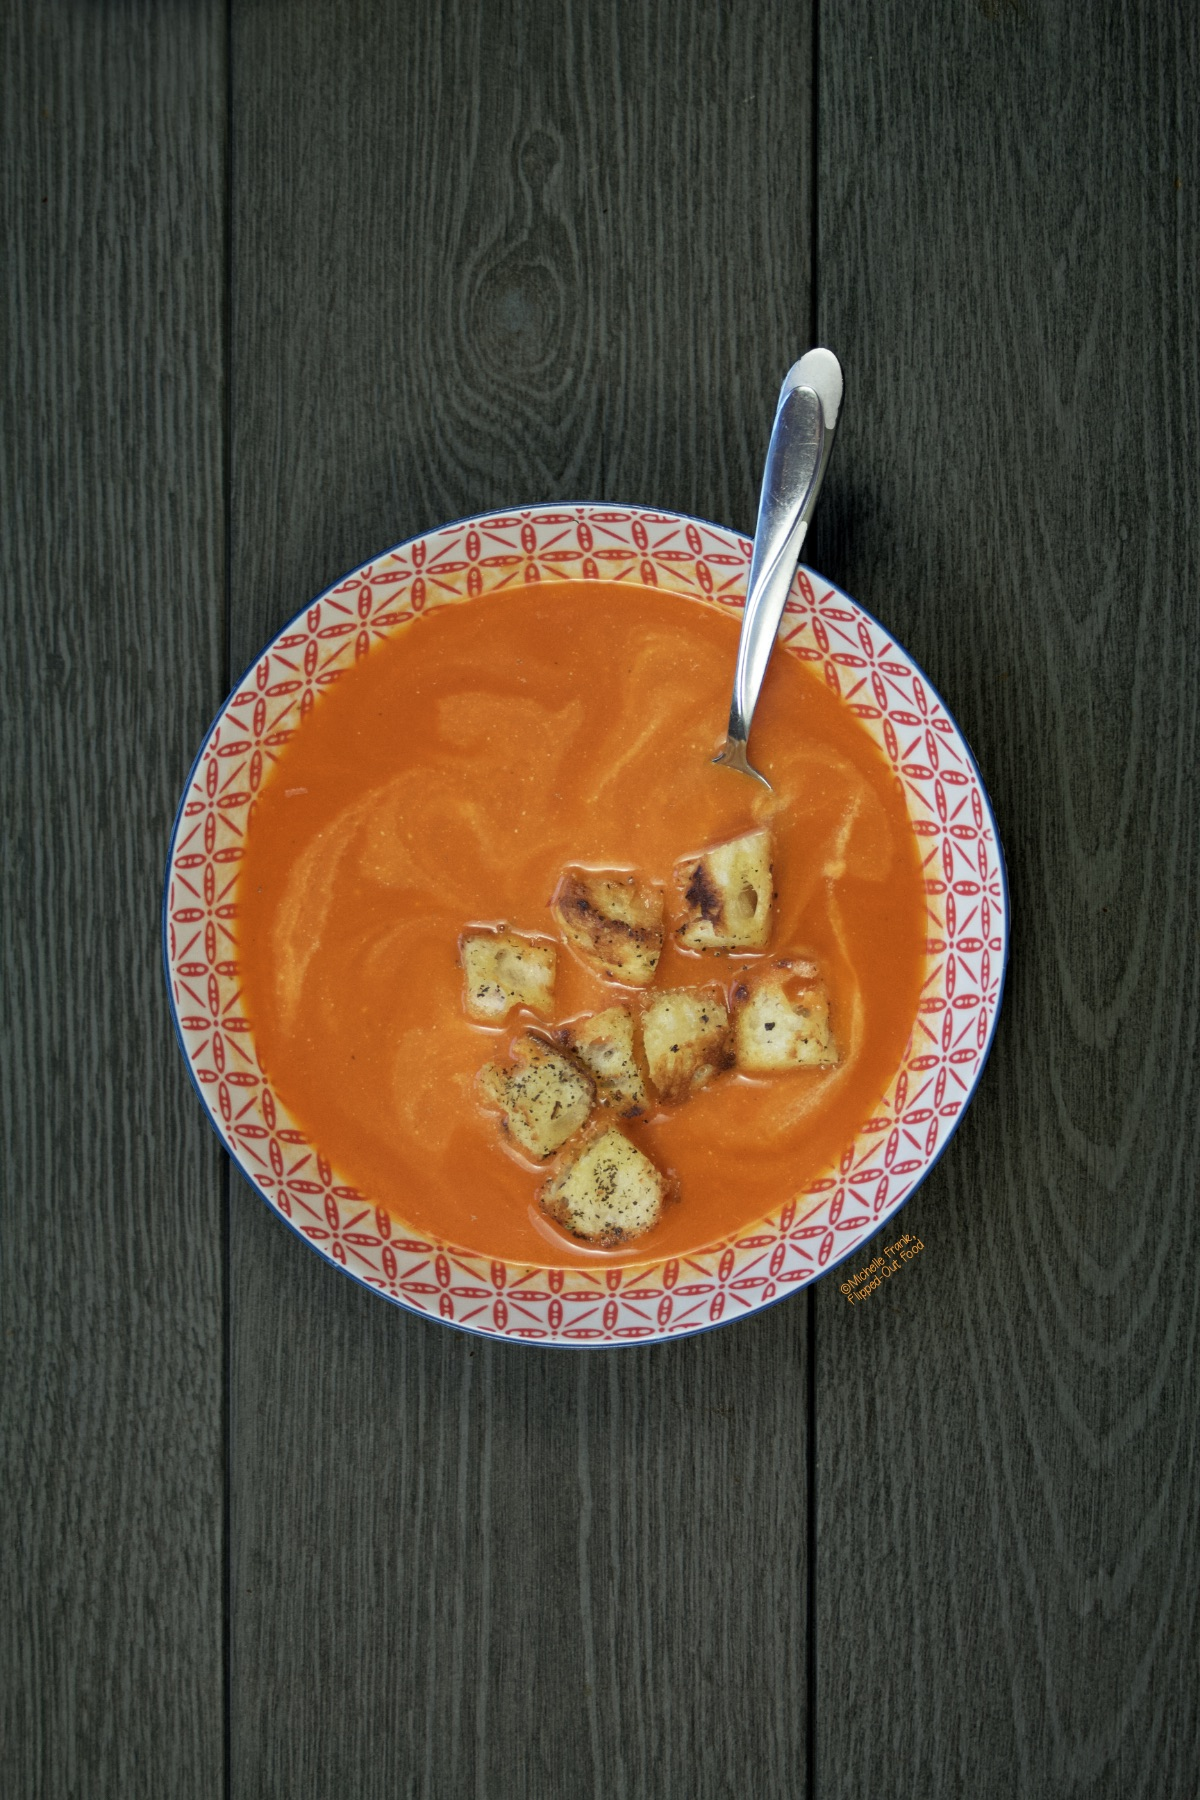 A bowl of Fresh Tomato Soup made creamy with ricotta cheese and topped with freshly made stove-top croutons.